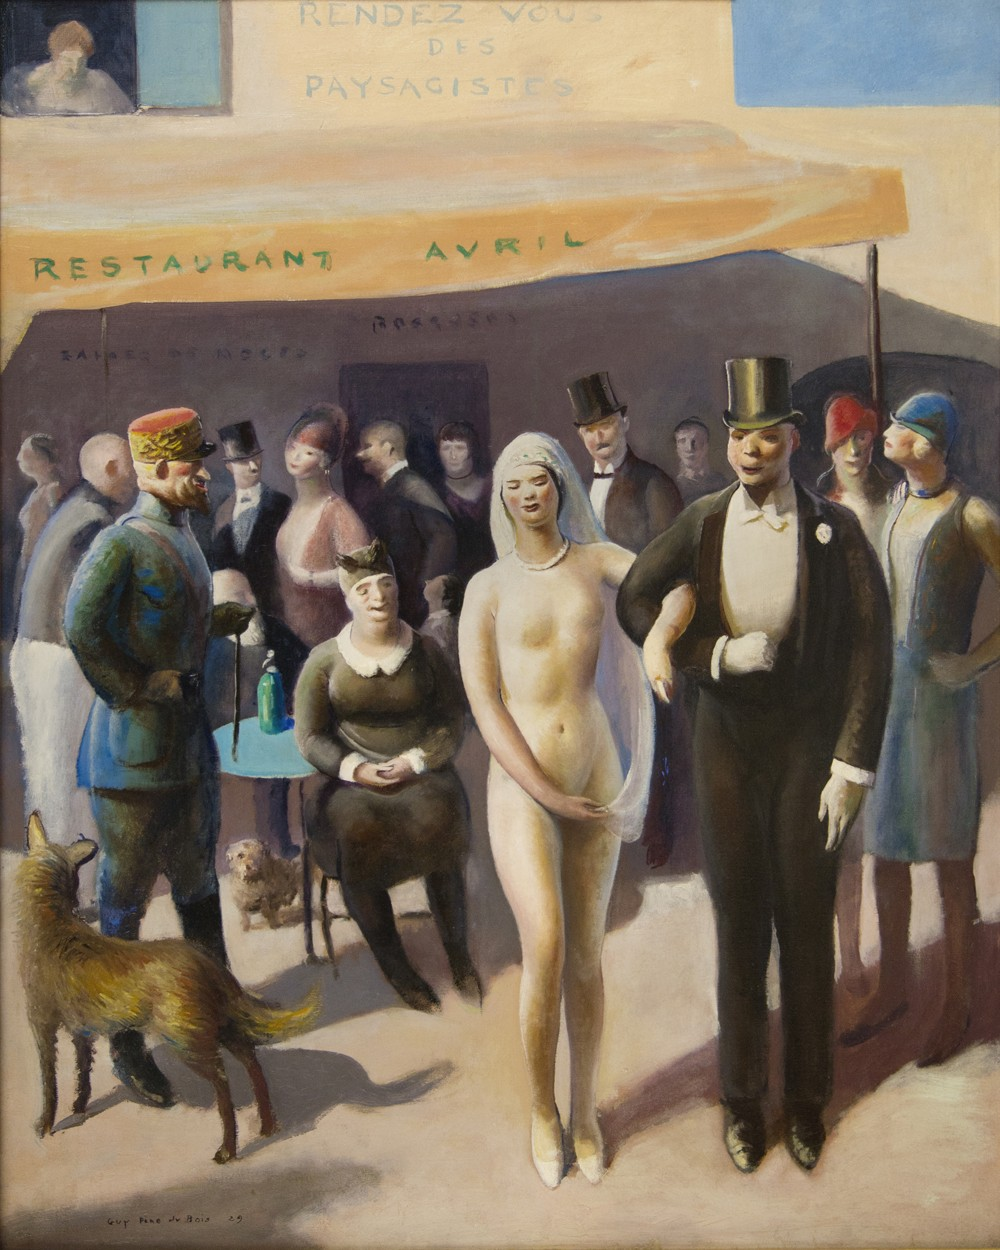 The detail shows guests enjoying a wedding celebration, in which the bride appears naked